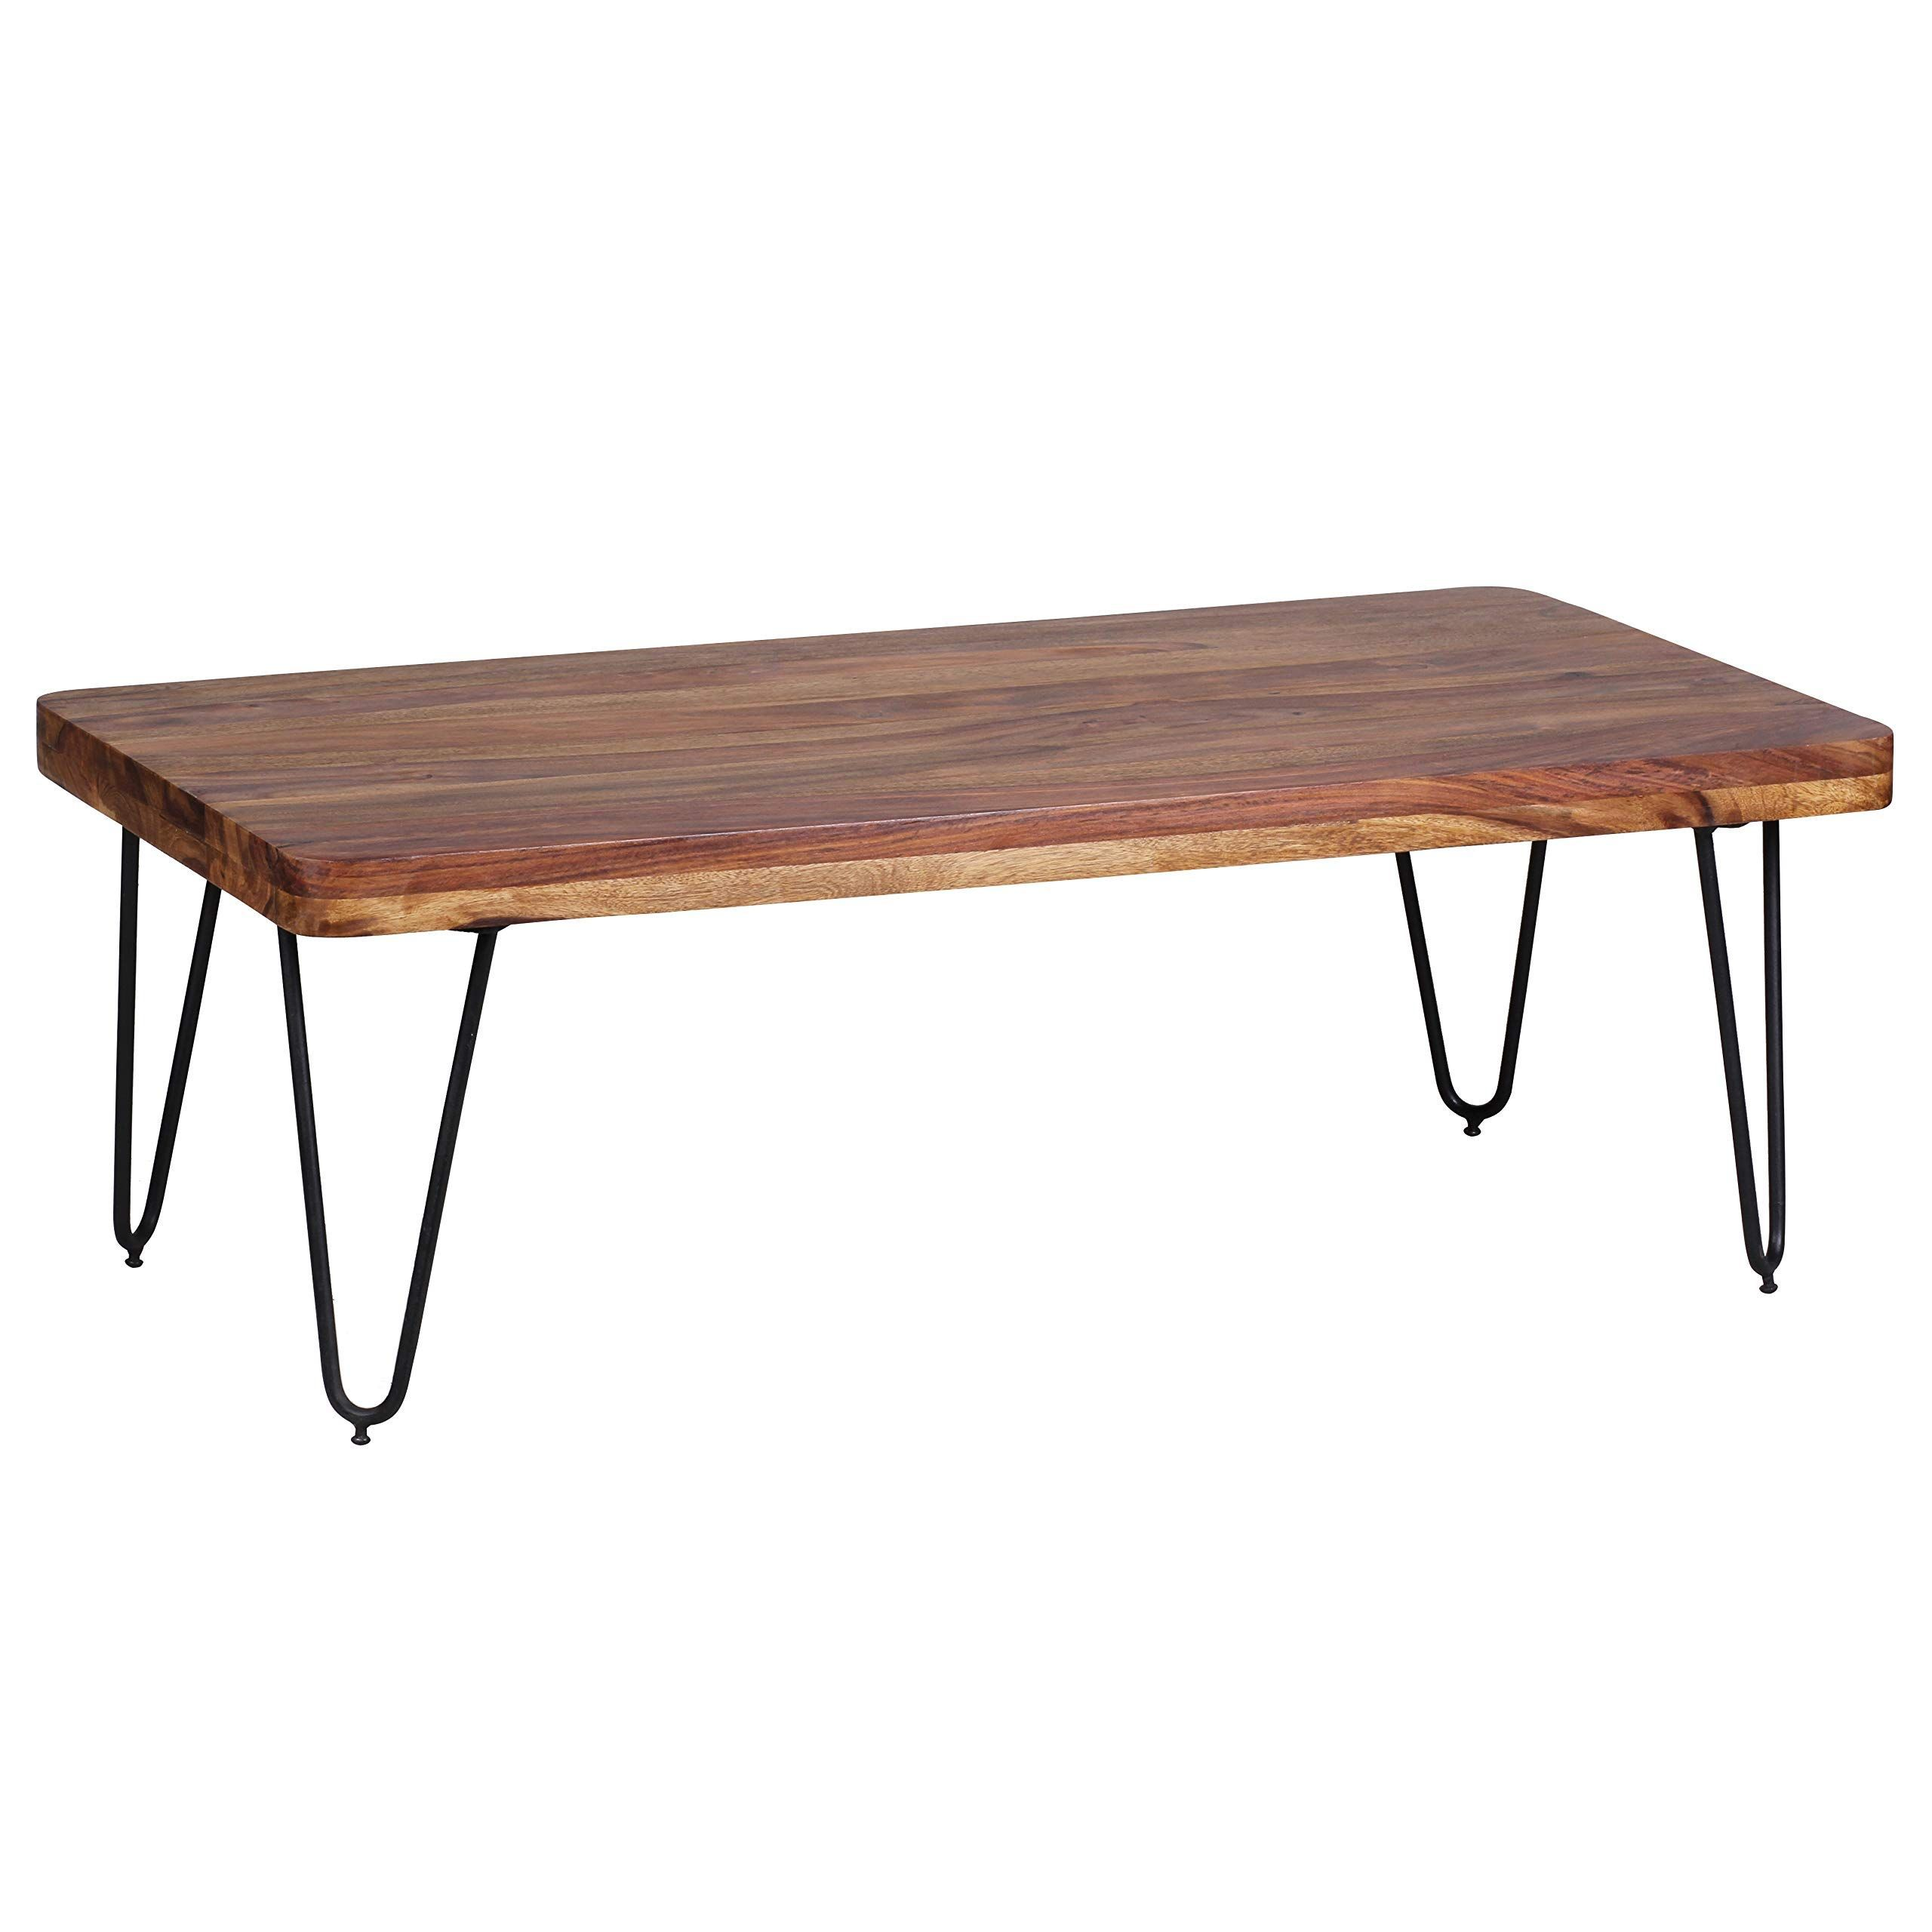 Finebuy Wohnling Couchtisch Bagli Sheesham Massivholz 115x40x60 Cm Wohnzimmertisch Design Sofatisch M Retro Coffee Tables Pine Coffee Table Coffee Table Wood